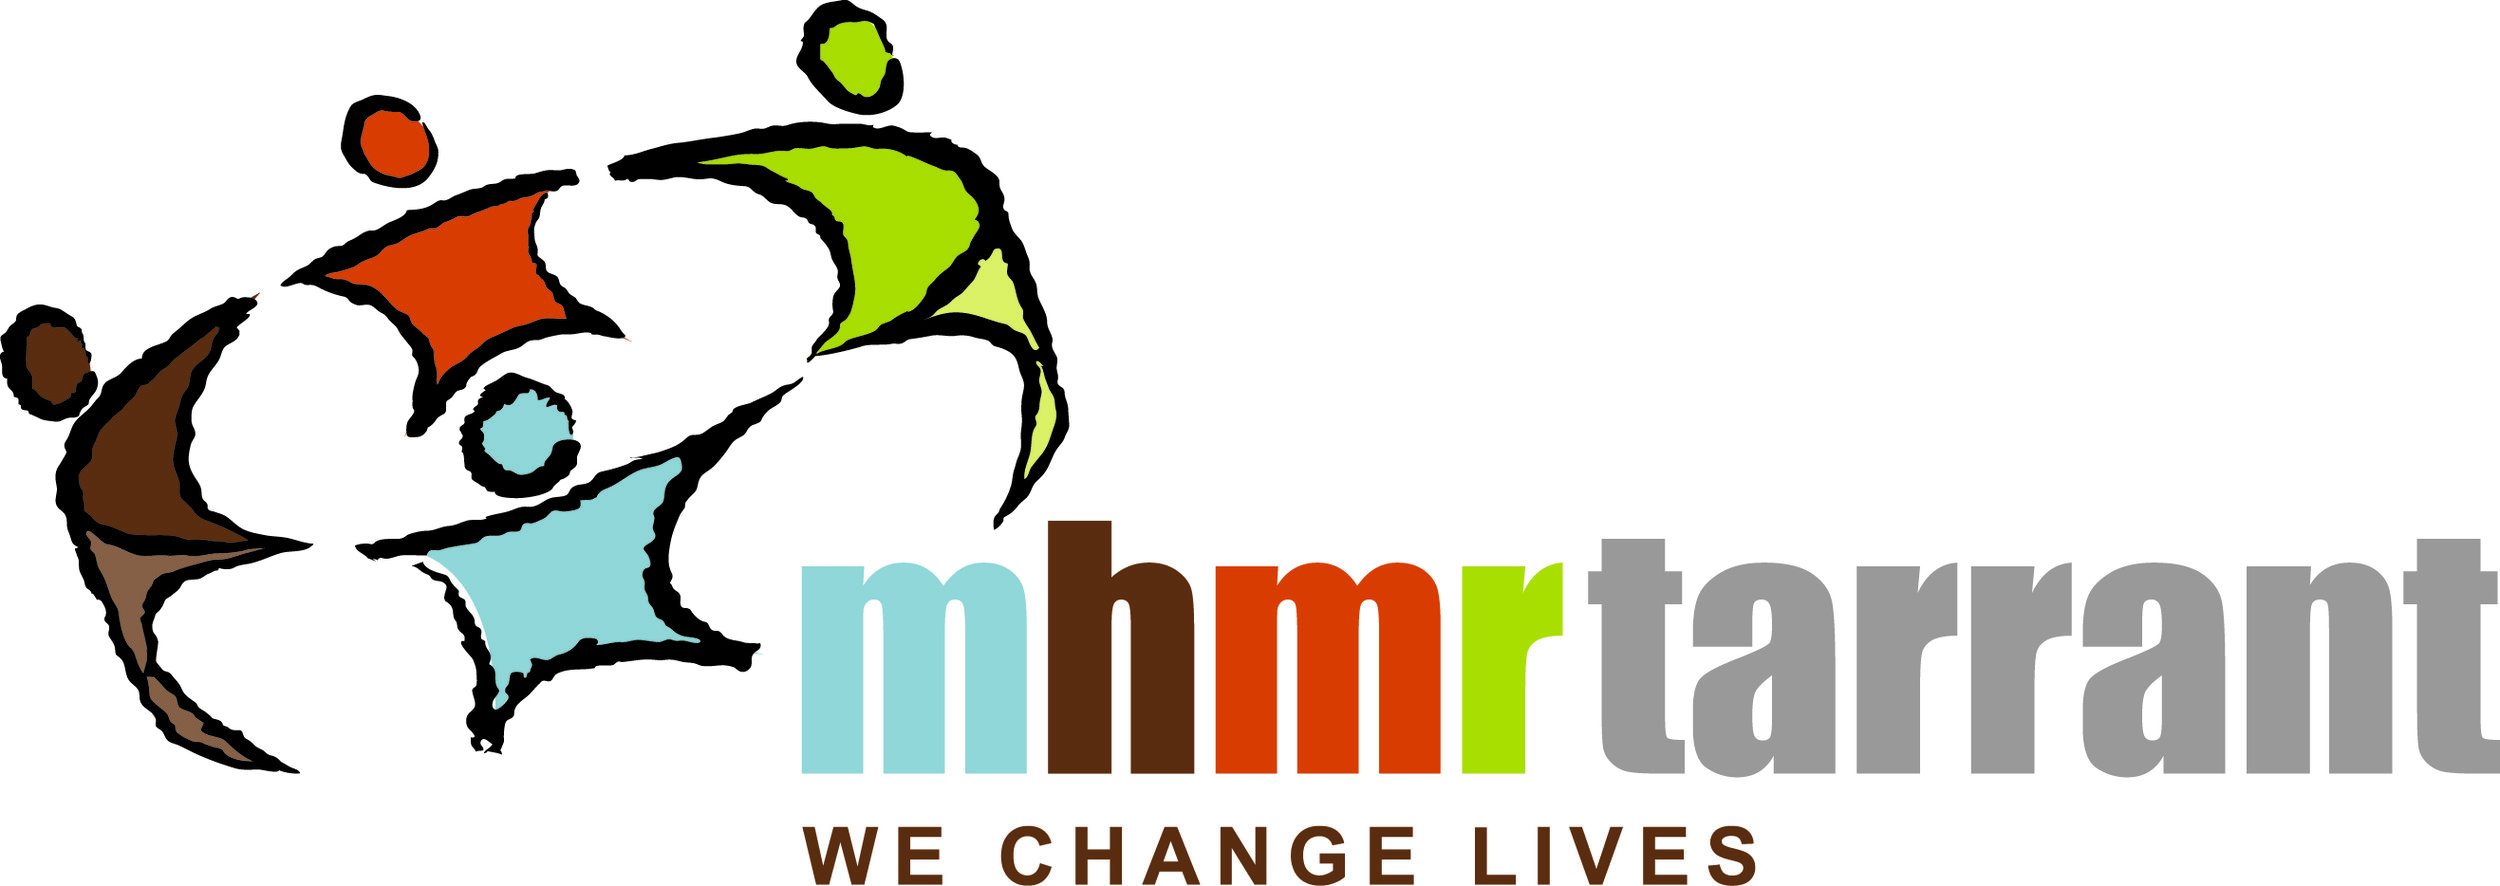 MHMR Color Horizontal logo.jpg